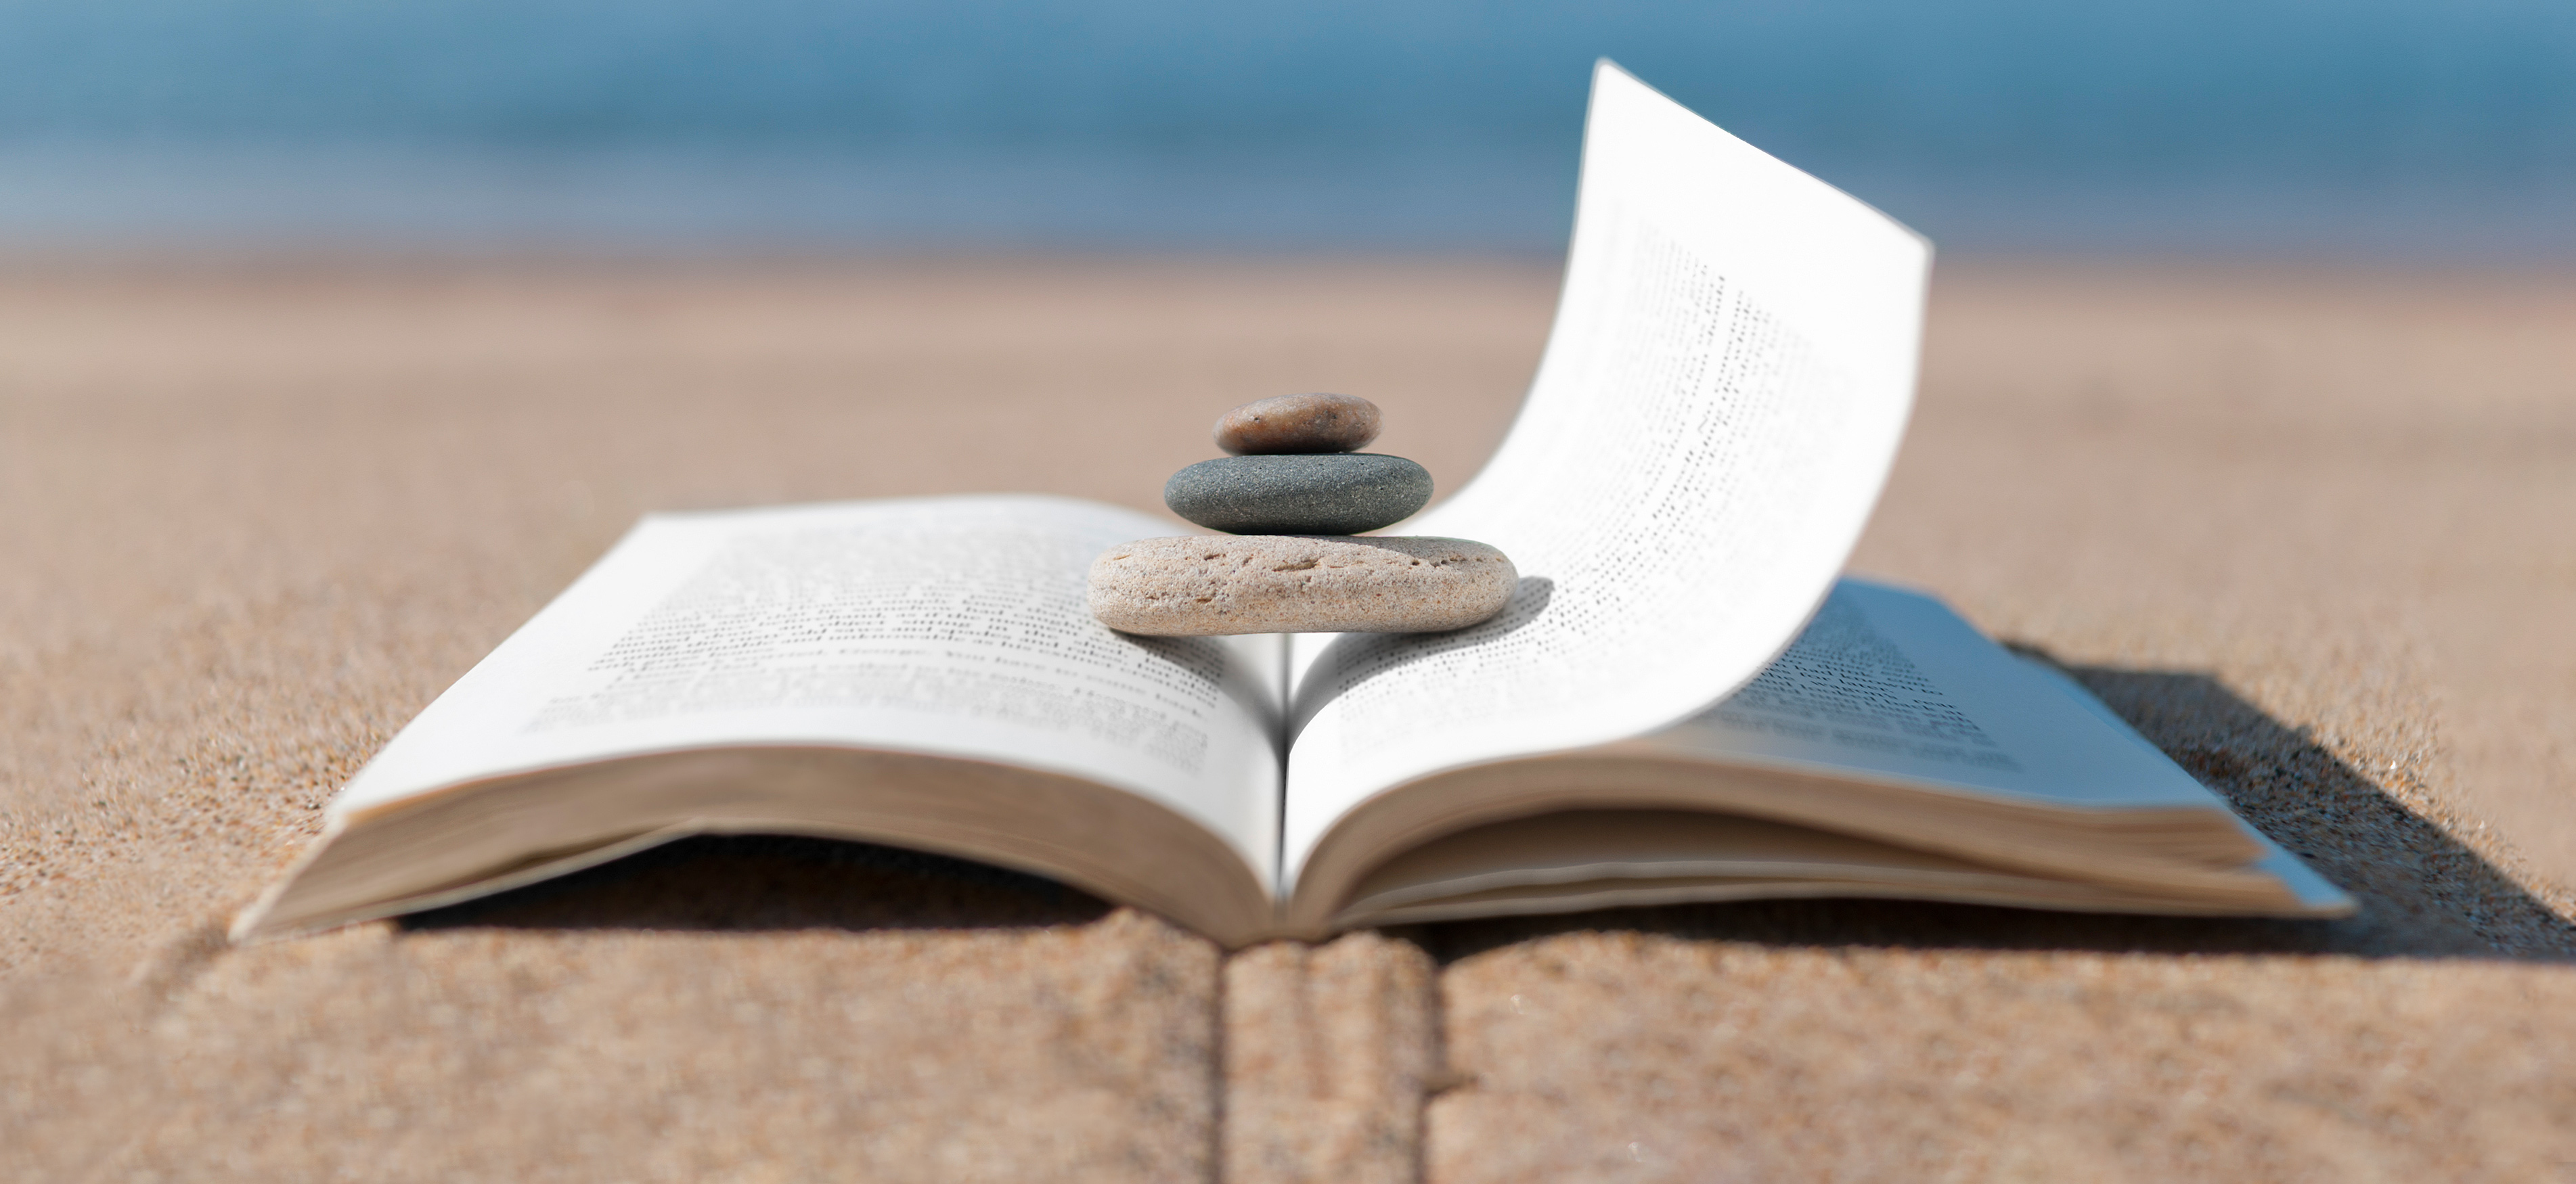 An open book on a beach with a few rocks placed on the pages.